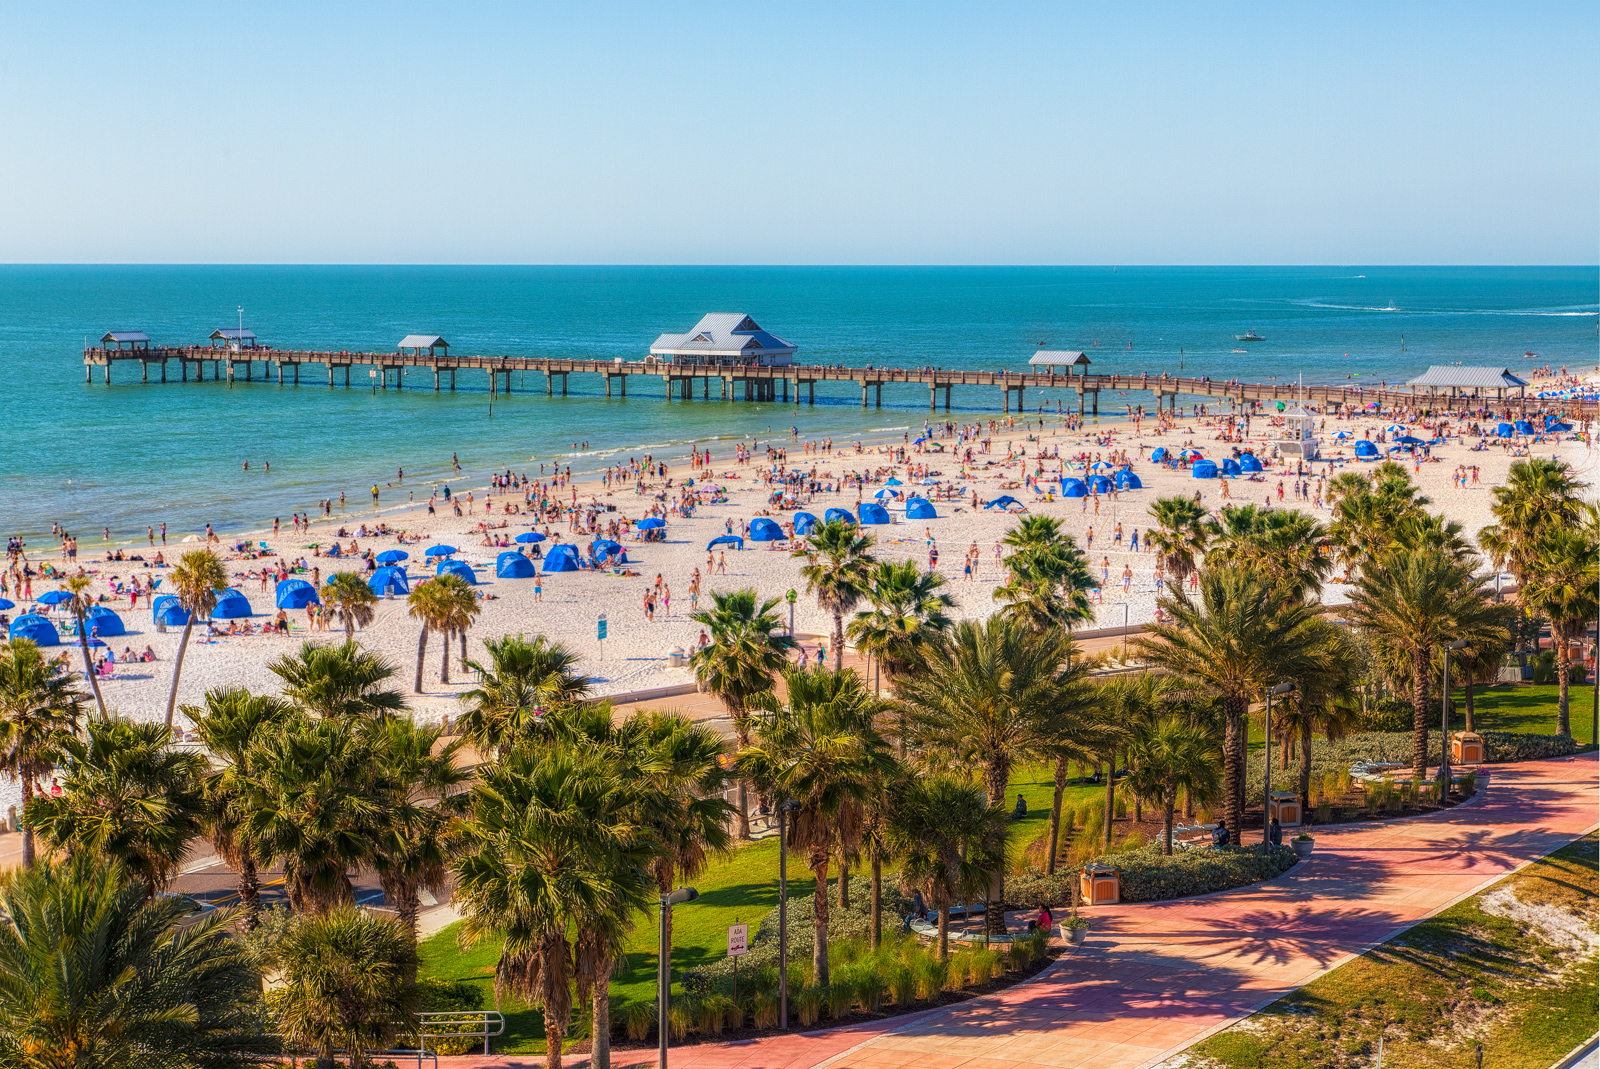 Clearwater-Beach-Spring-Break-from-Above-Updated-Again